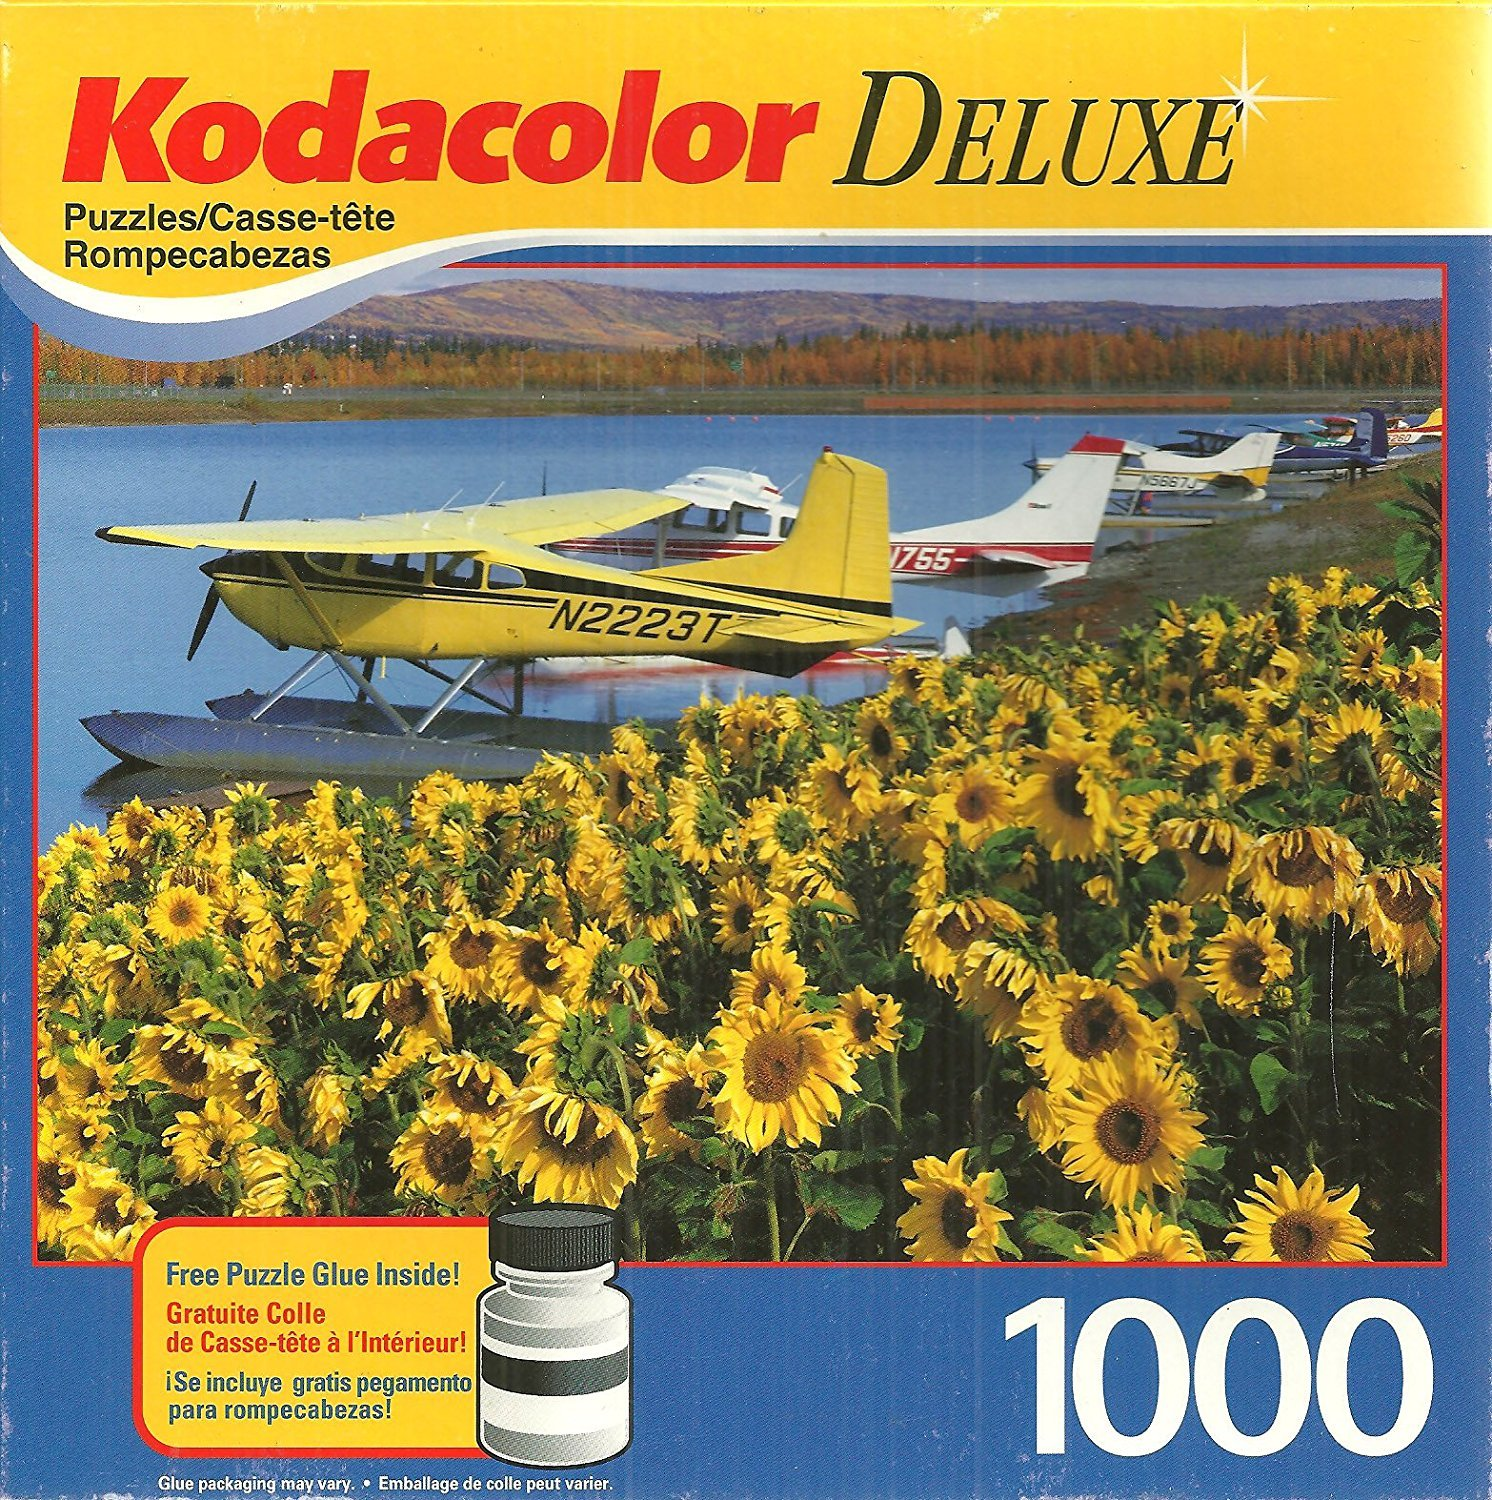 Kodacolor Deluxe Floatplanes At Fairbanks AK 1000 Piece Jigsaw Puzzle with Glue Mega Brands